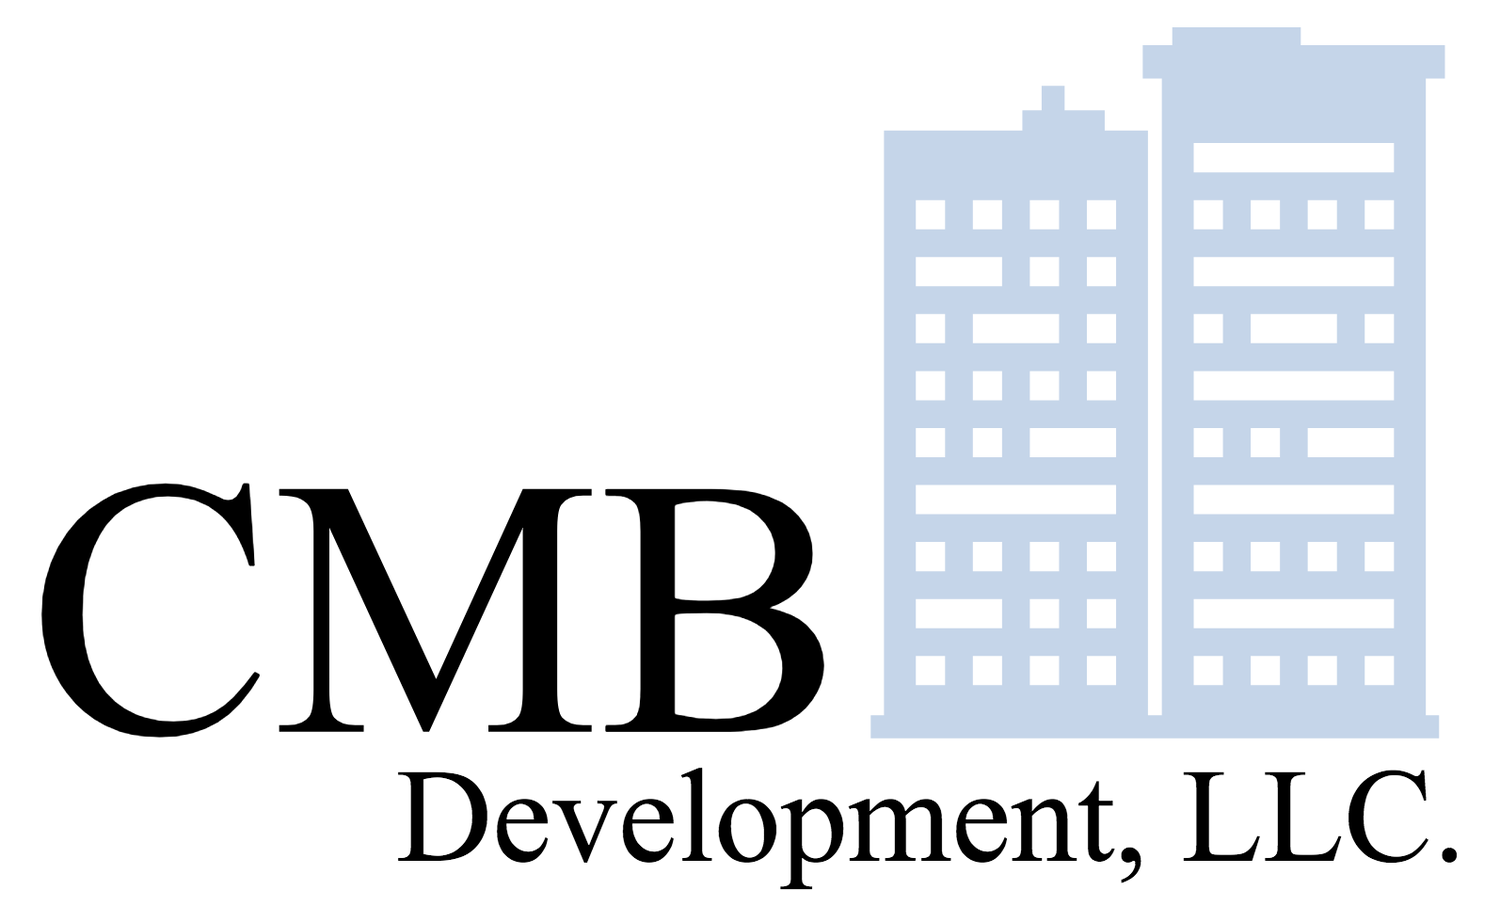 CMB Development, LLC